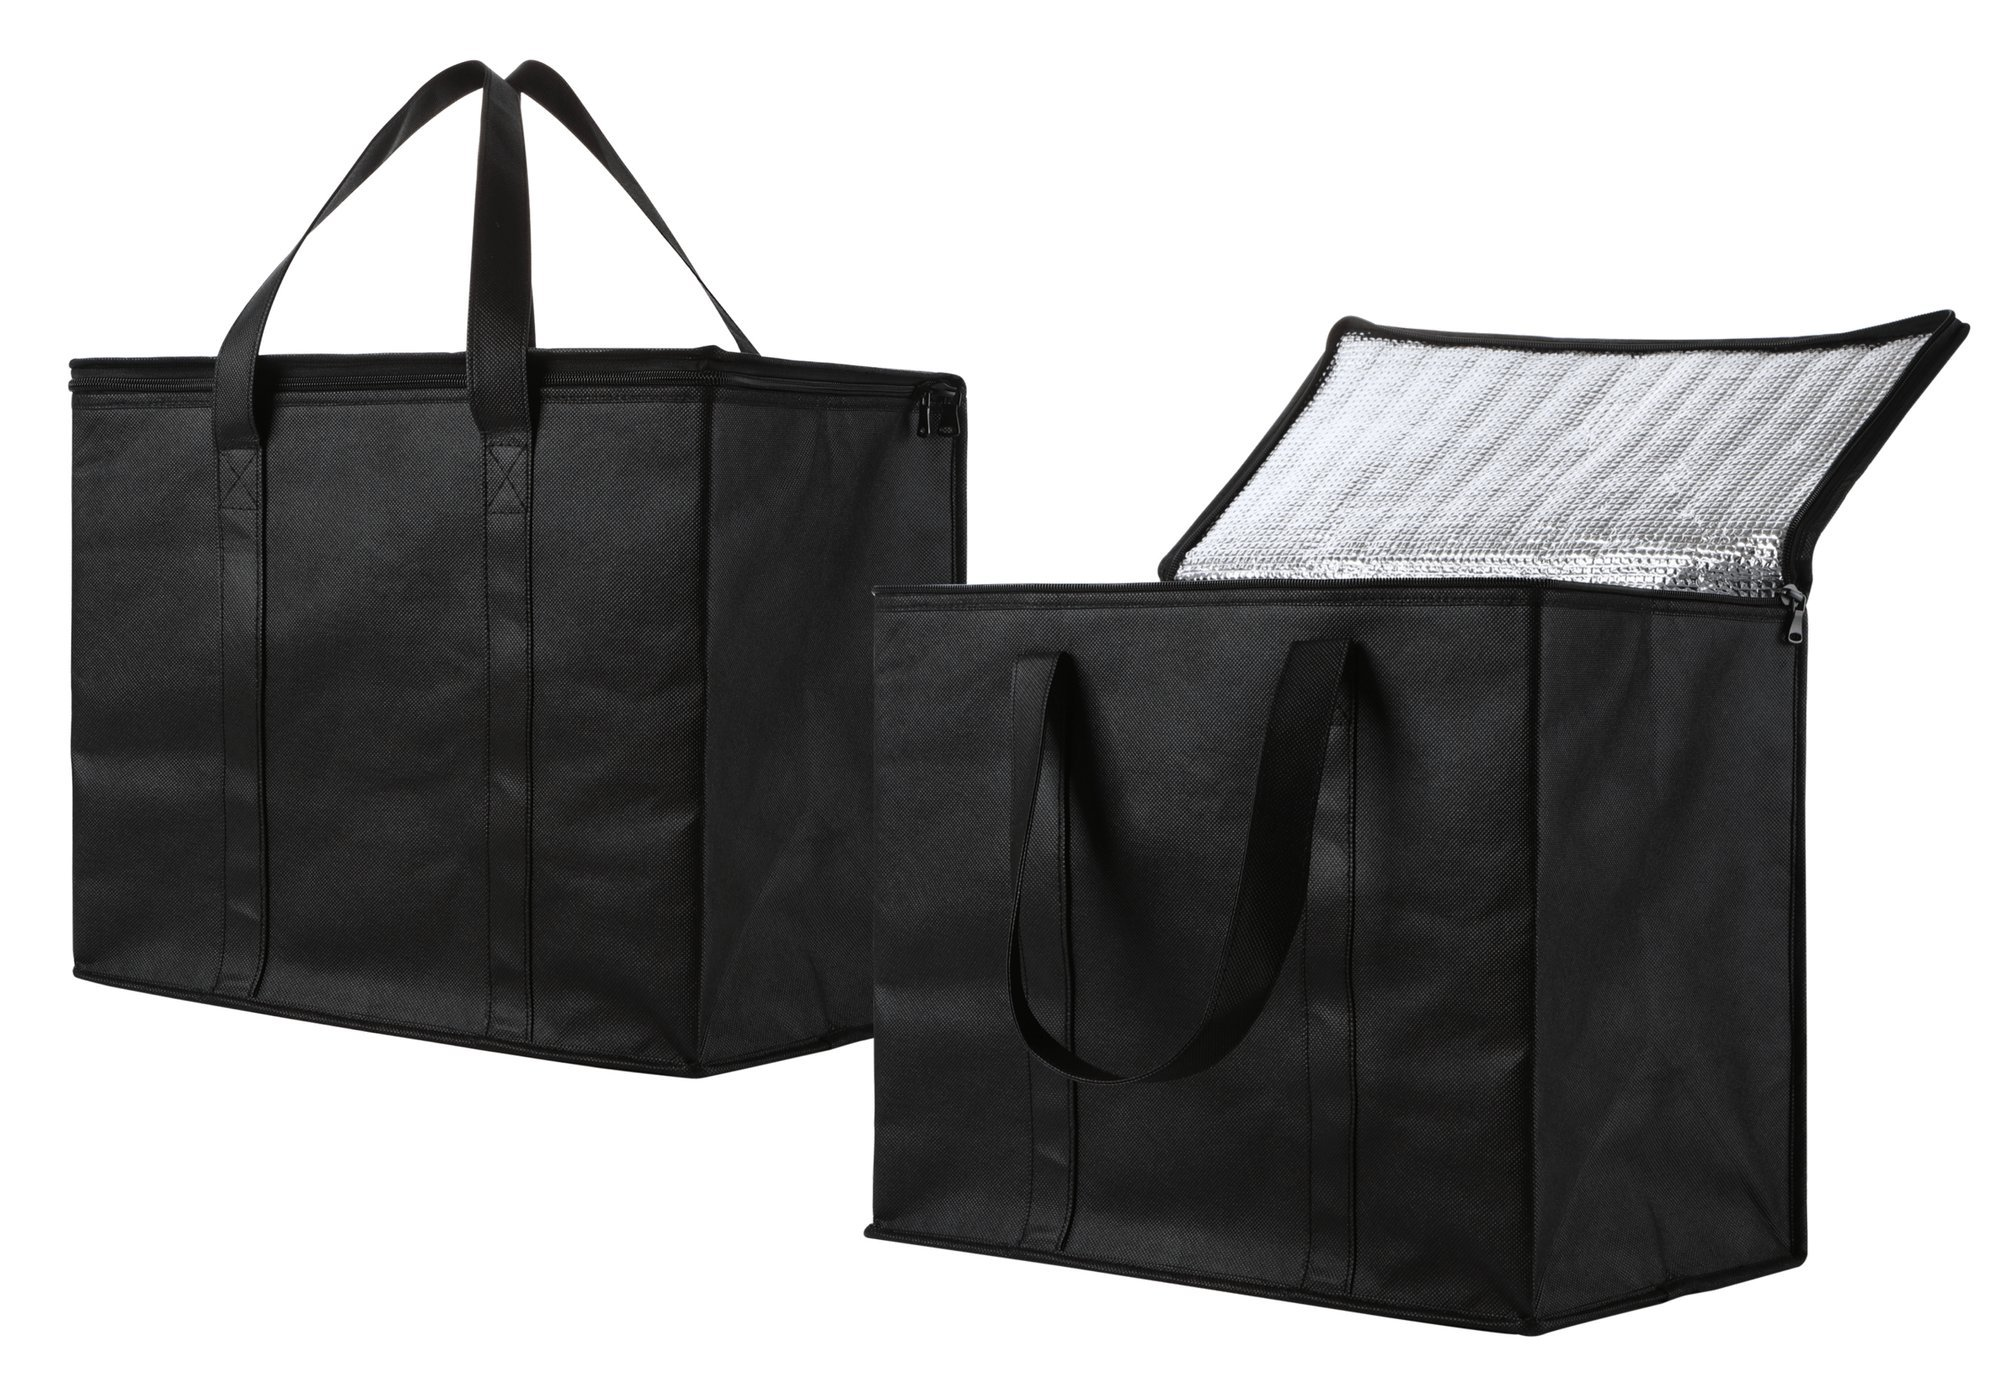 NZ Home 2 Pack Insulated Reusable Grocery Bags, Extra Large, Foldable, Stands Upright, Sturdy Zipper by NZ home (Image #6)